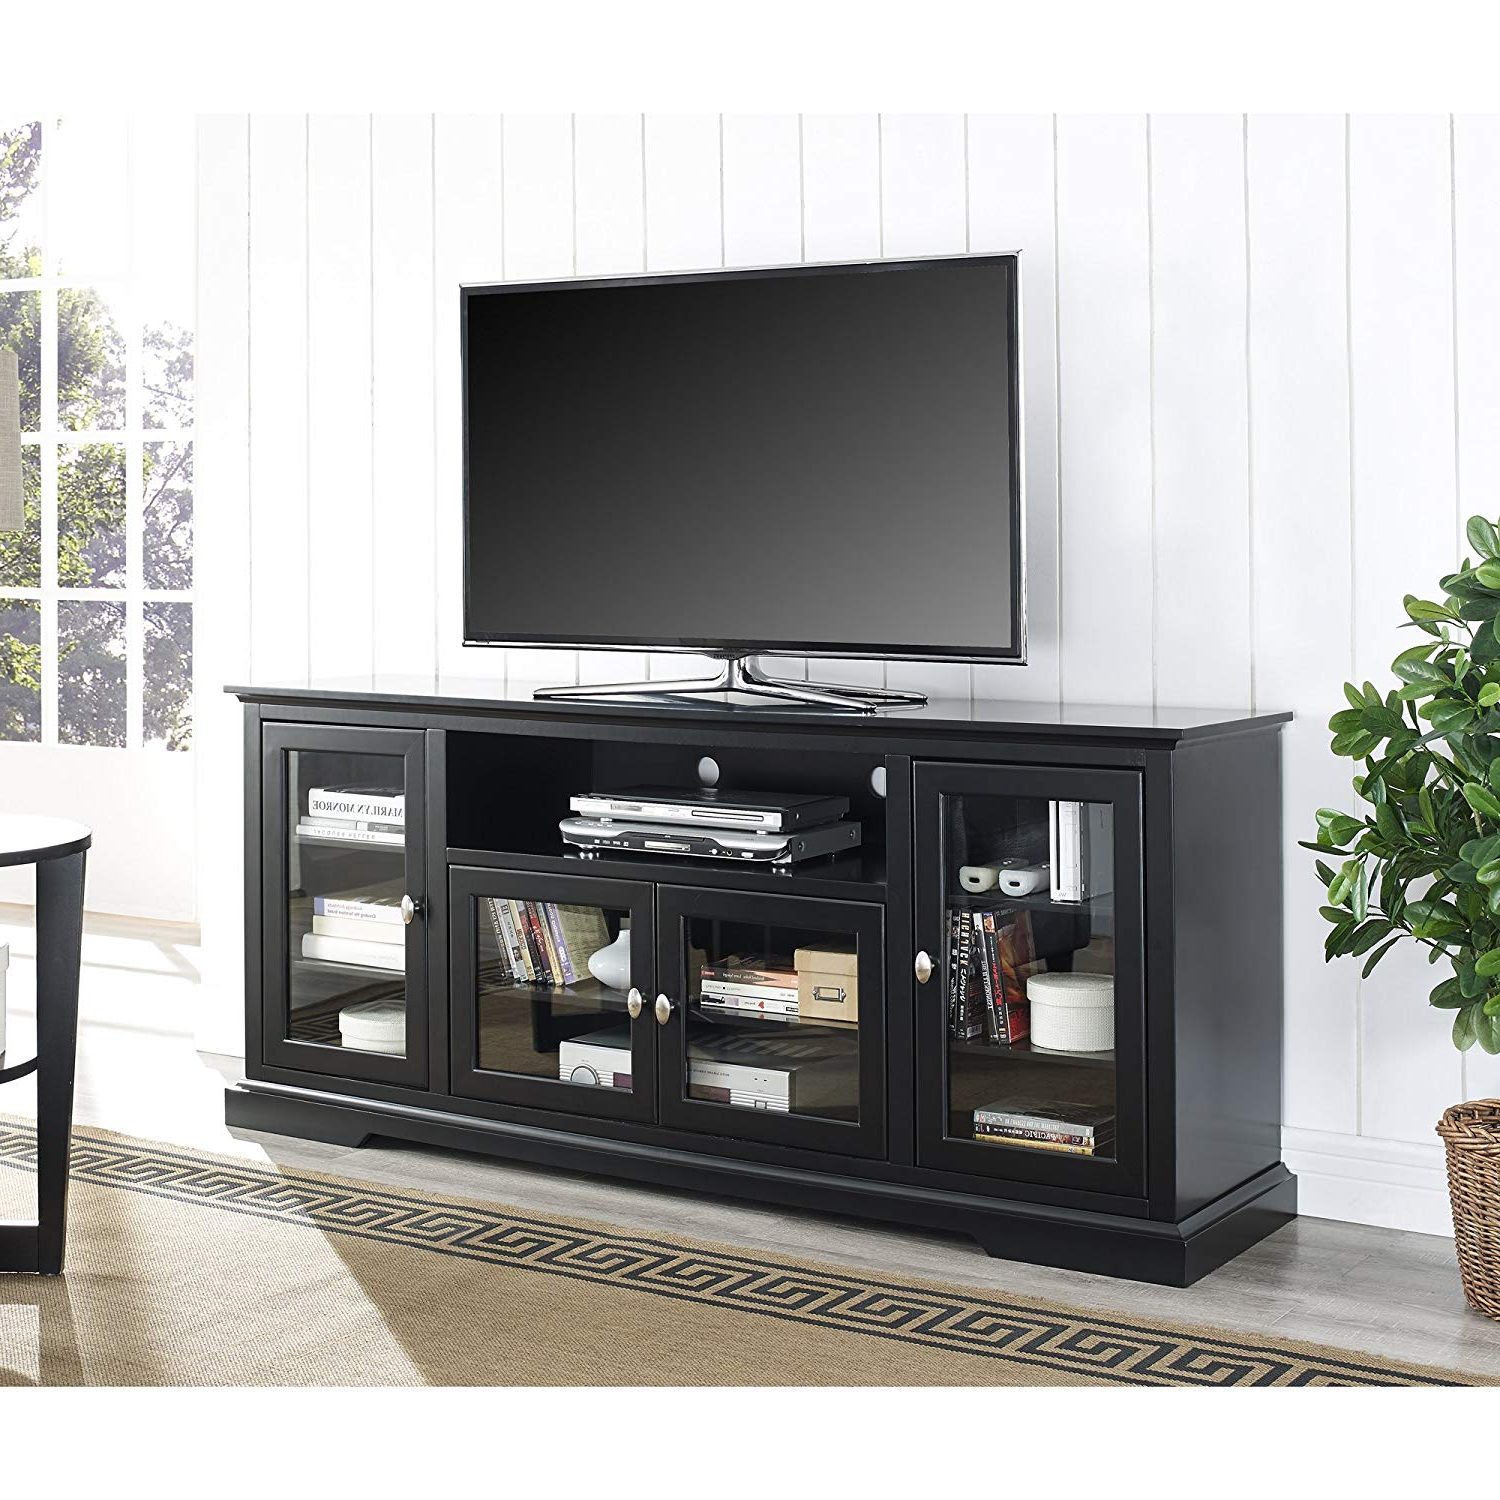 "Amazon: We Furniture 70"" Highboy Style Wood Tv Stand Console Regarding Well Known Tv Cabinets With Glass Doors (View 18 of 20)"